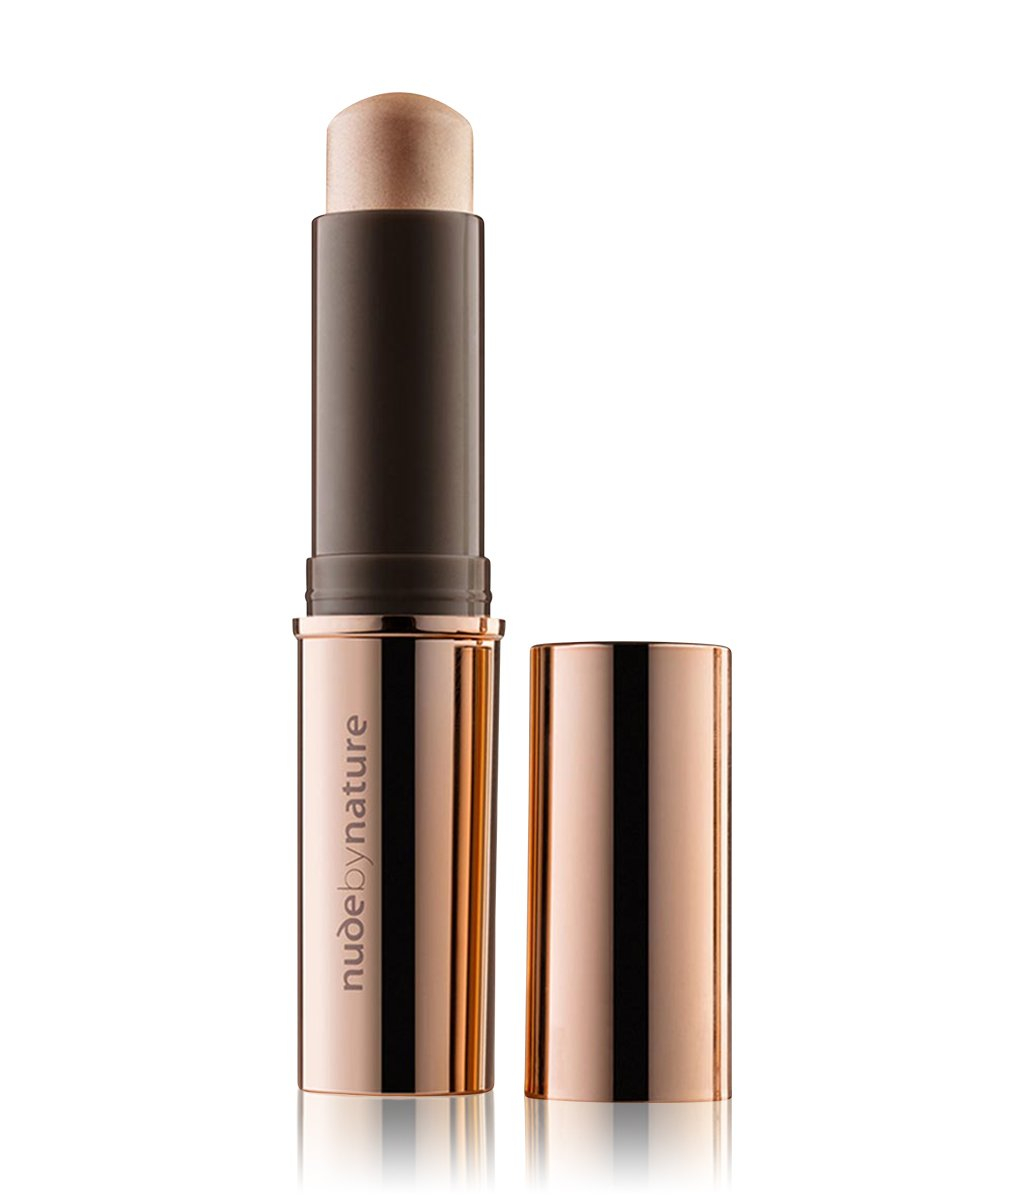 Nude by Nature Touch of Glow Highlight Stick reviews in